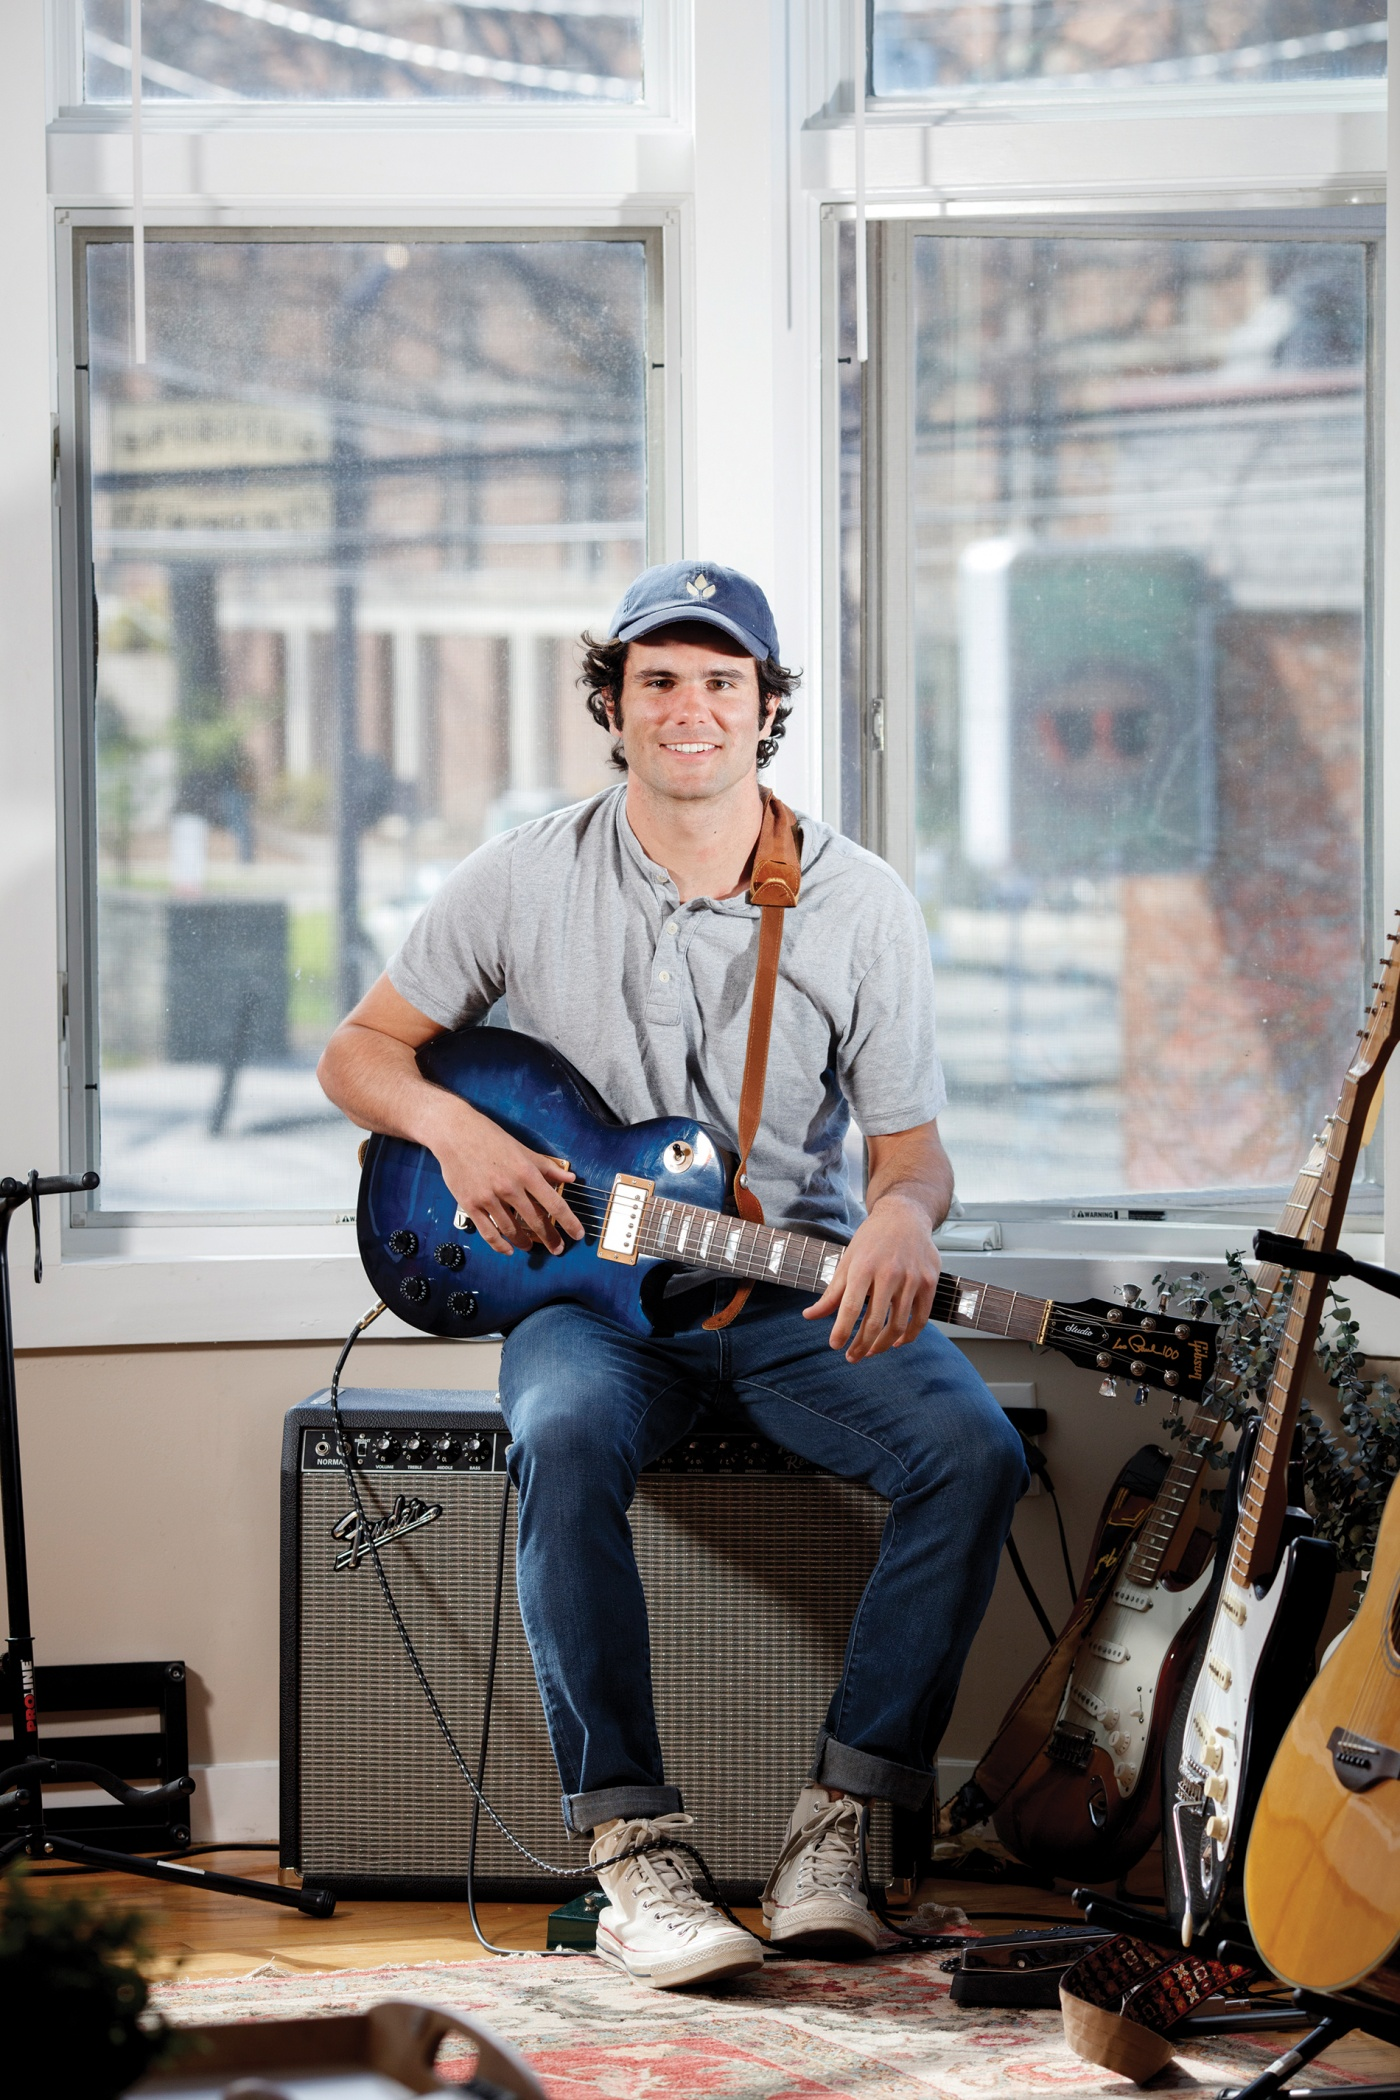 Aidan Reilly playing guitar in his dorm room.